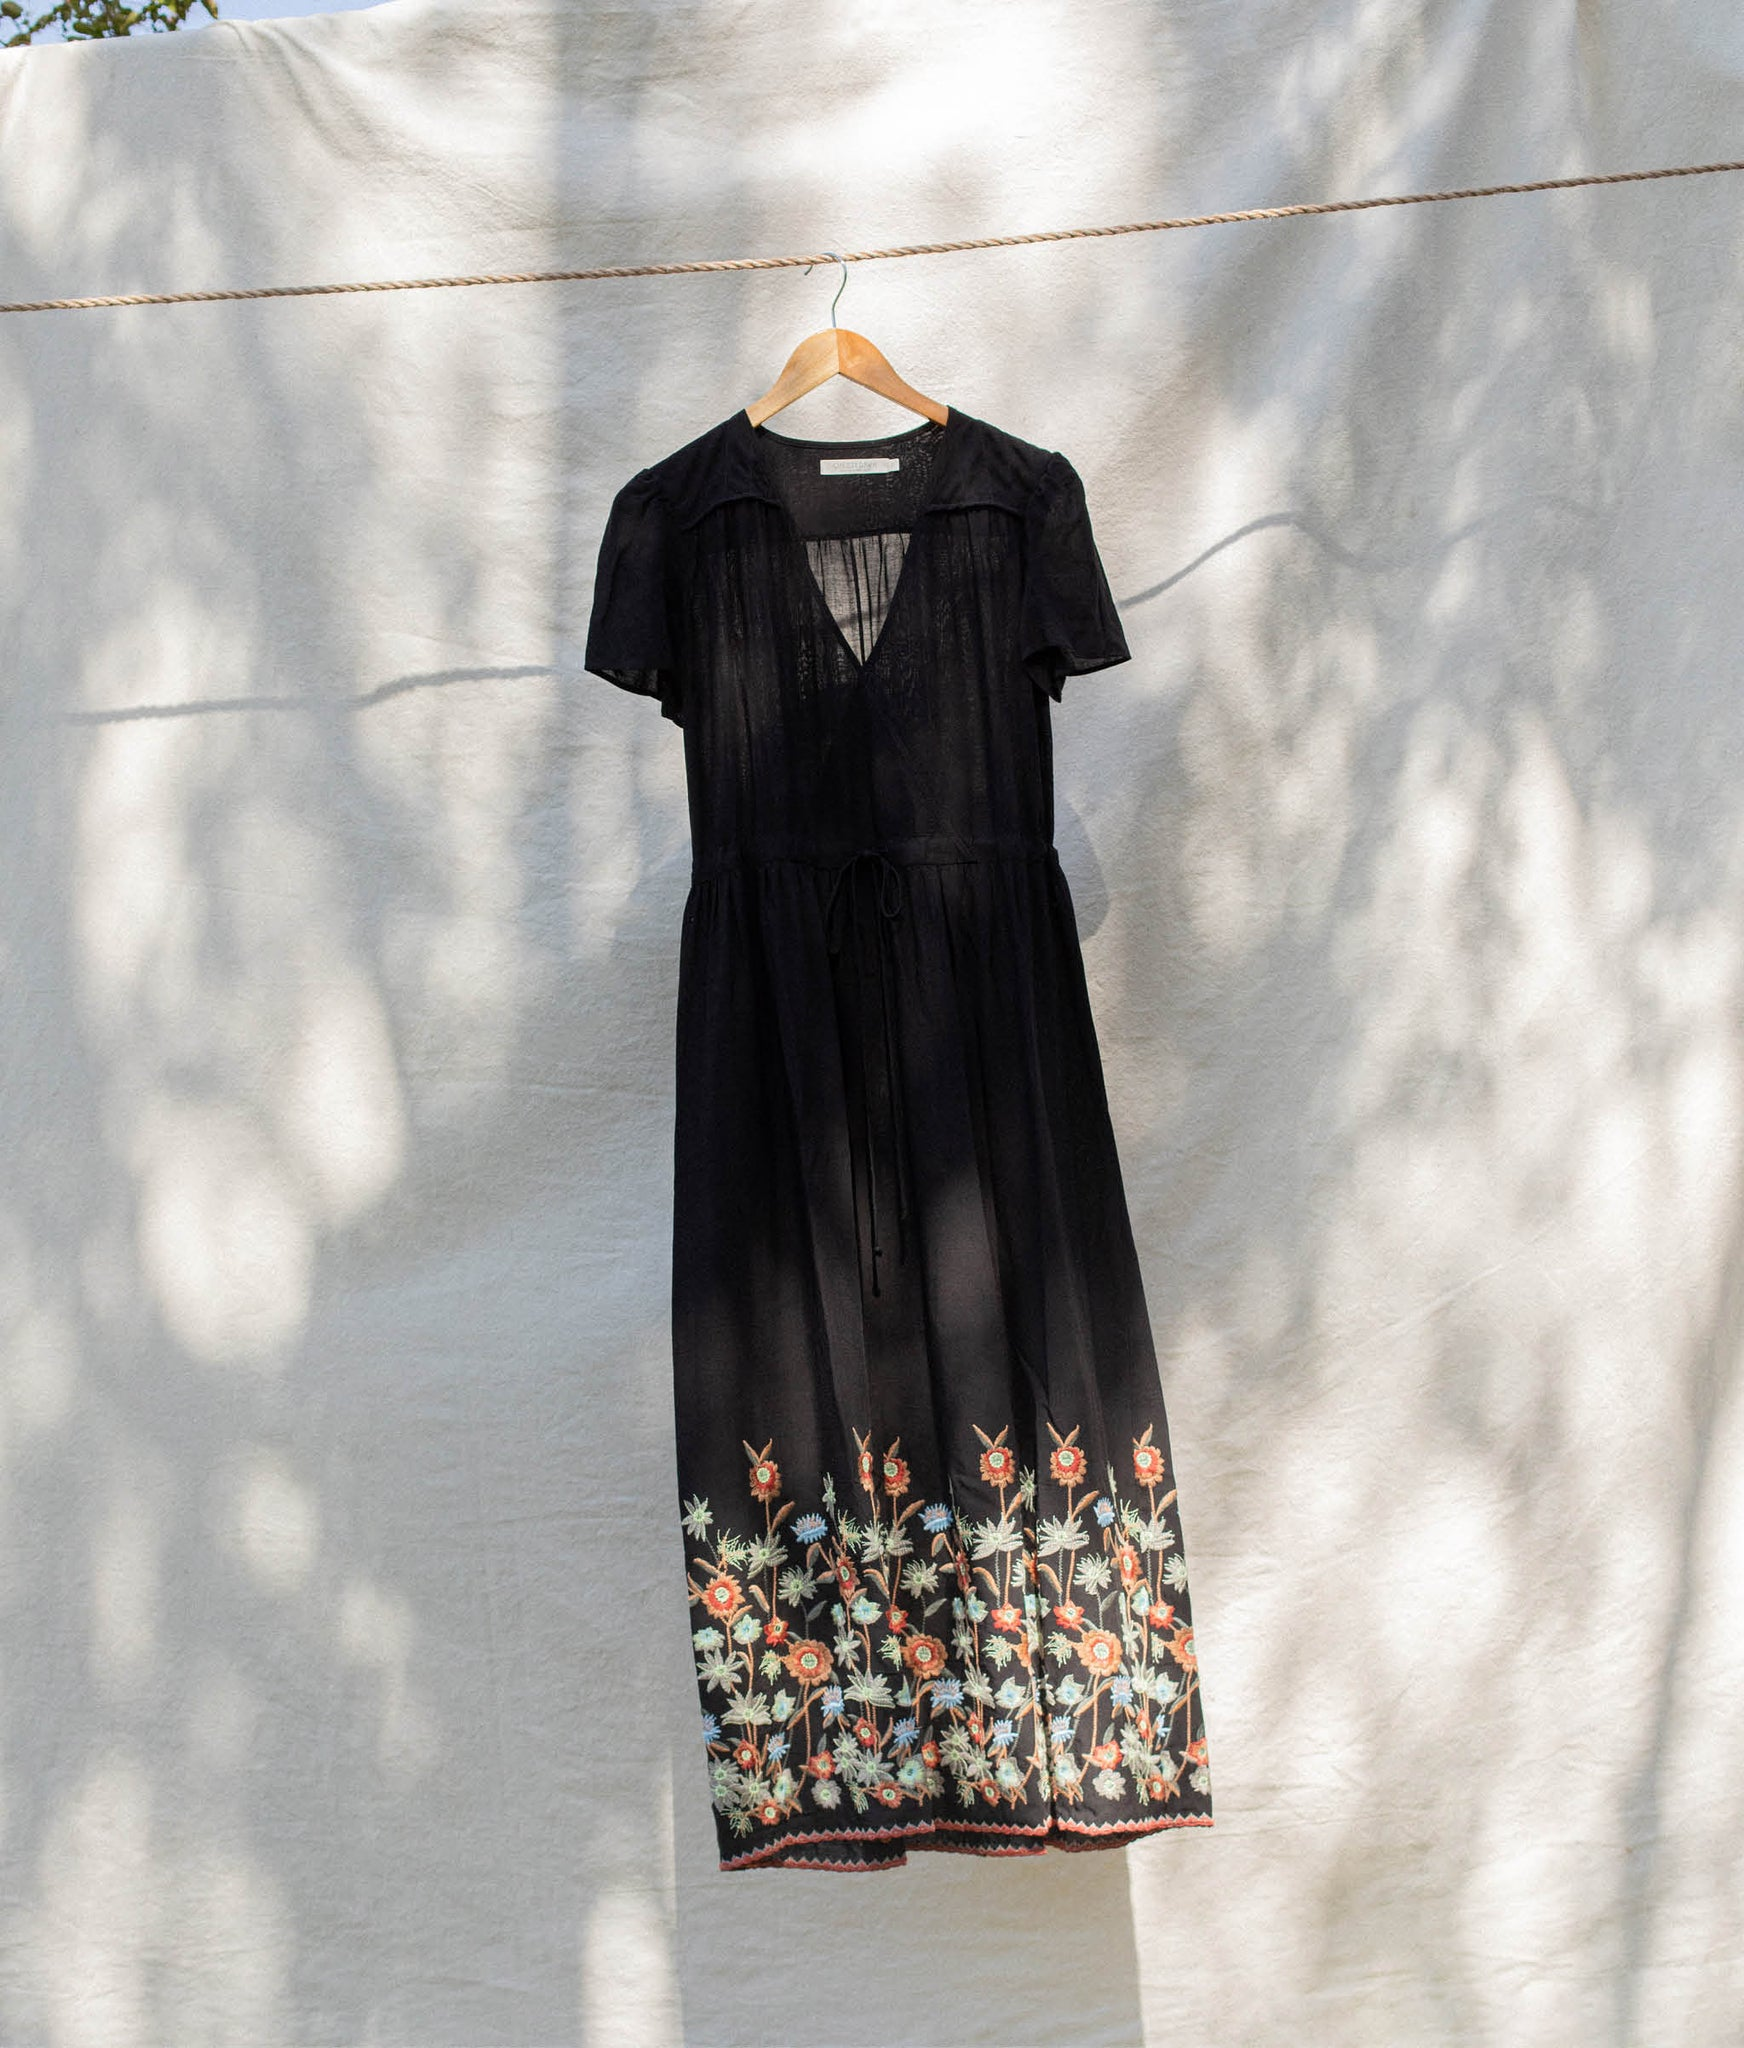 The Dawn Dress | Secret Garden (1-of-a-Kind)